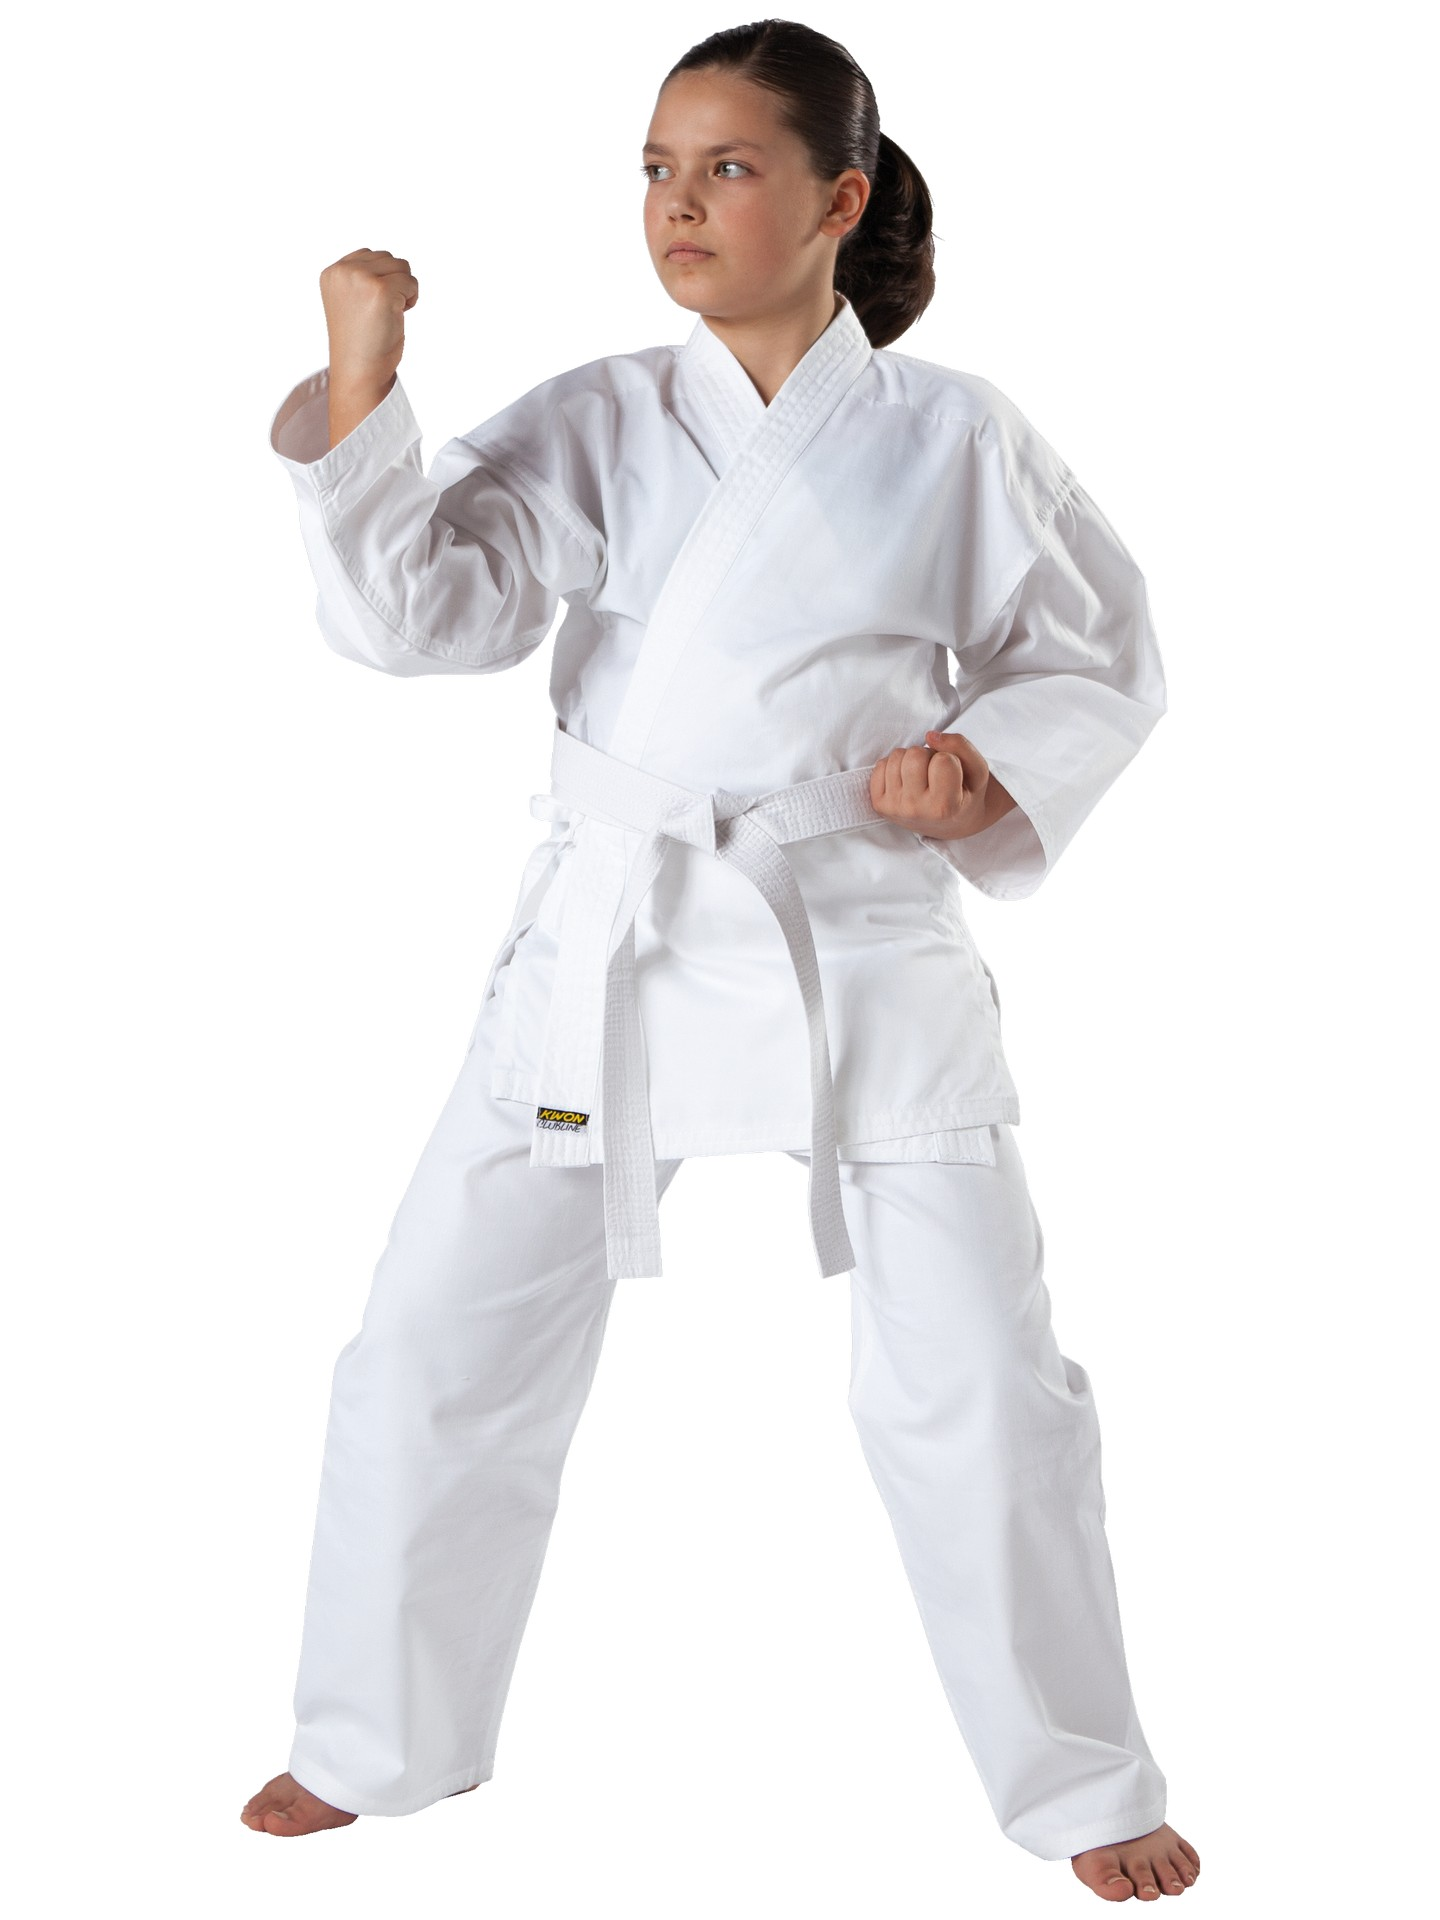 9d7ede27a Karate Uniform Renshu